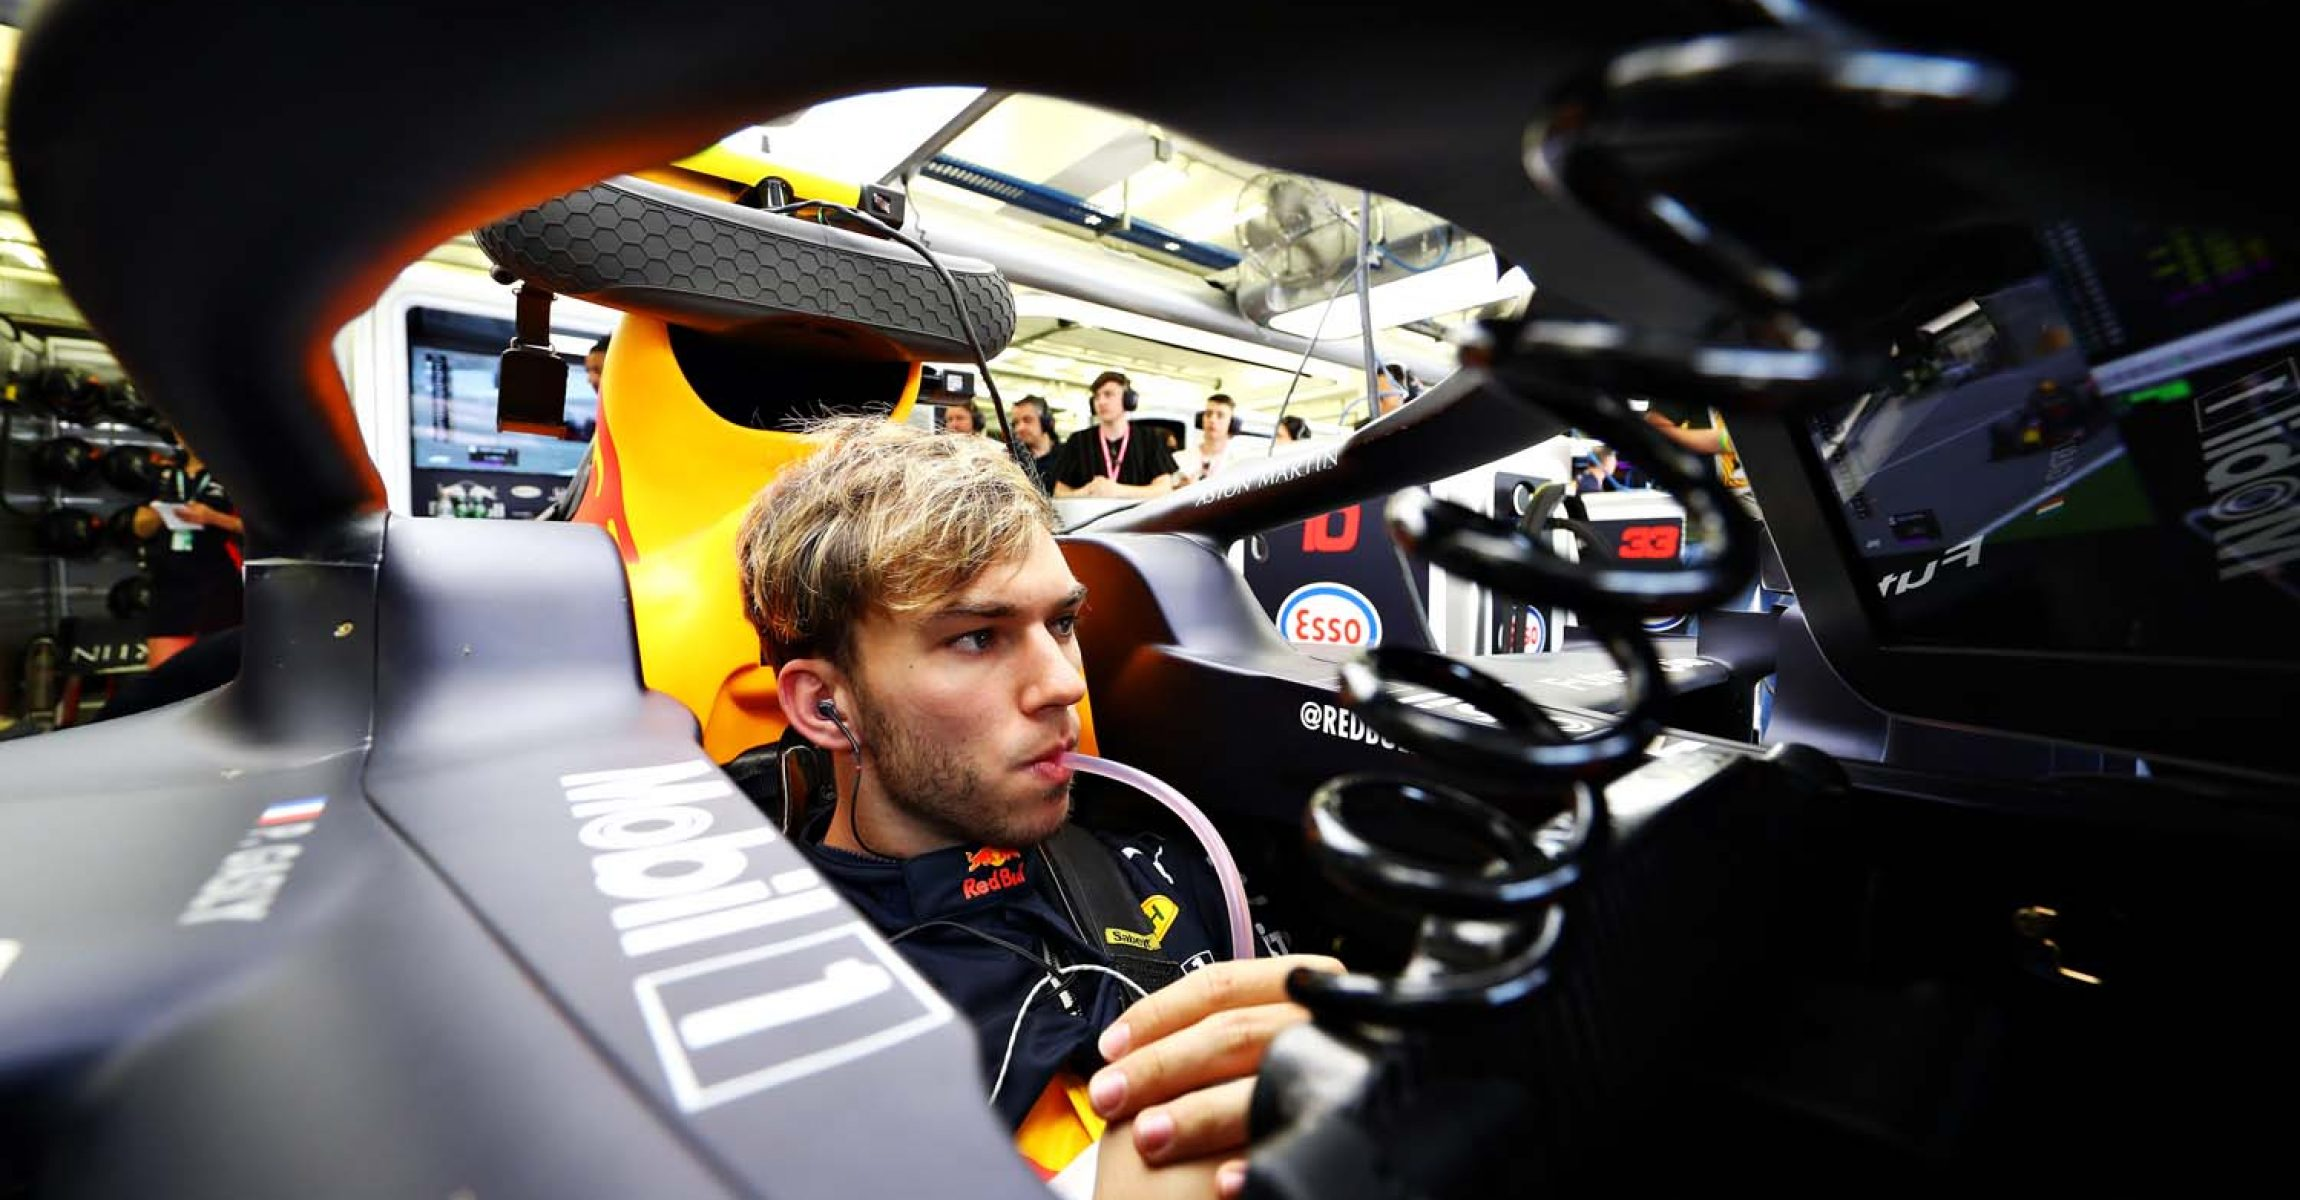 BAHRAIN, BAHRAIN - MARCH 29: Pierre Gasly of France and Red Bull Racing prepares to drive in the garage during practice for the F1 Grand Prix of Bahrain at Bahrain International Circuit on March 29, 2019 in Bahrain, Bahrain. (Photo by Mark Thompson/Getty Images) // Getty Images / Red Bull Content Pool // AP-1YVADRTKH2111 // Usage for editorial use only // Please go to www.redbullcontentpool.com for further information. //